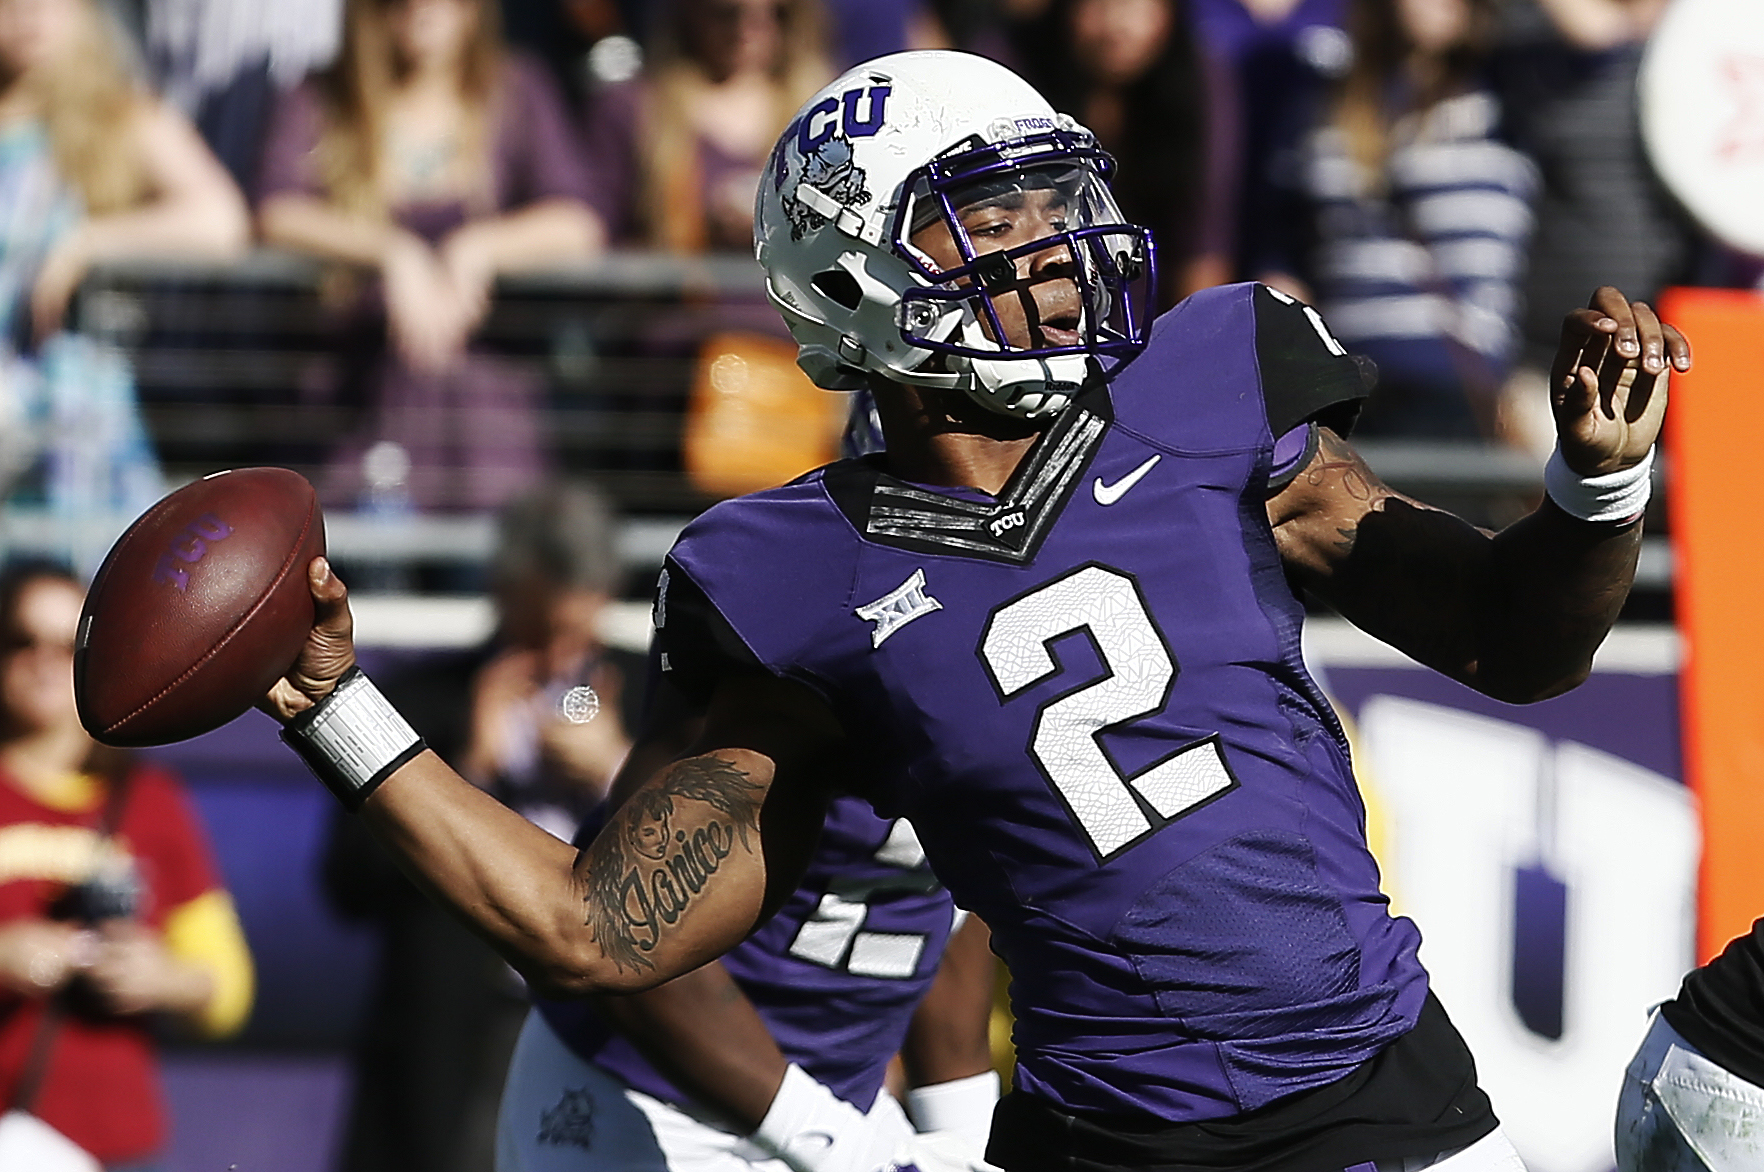 TCU quarterback Trevone Boykin (2) throws to a open receiver during the second half of an NCAA college football game against Iowa State at Amon G. Carter Stadium, Saturday, Dec. 6, 2014, in Fort Worth, Texas. TCU won 55-3. (AP Photo/Brandon Wade)